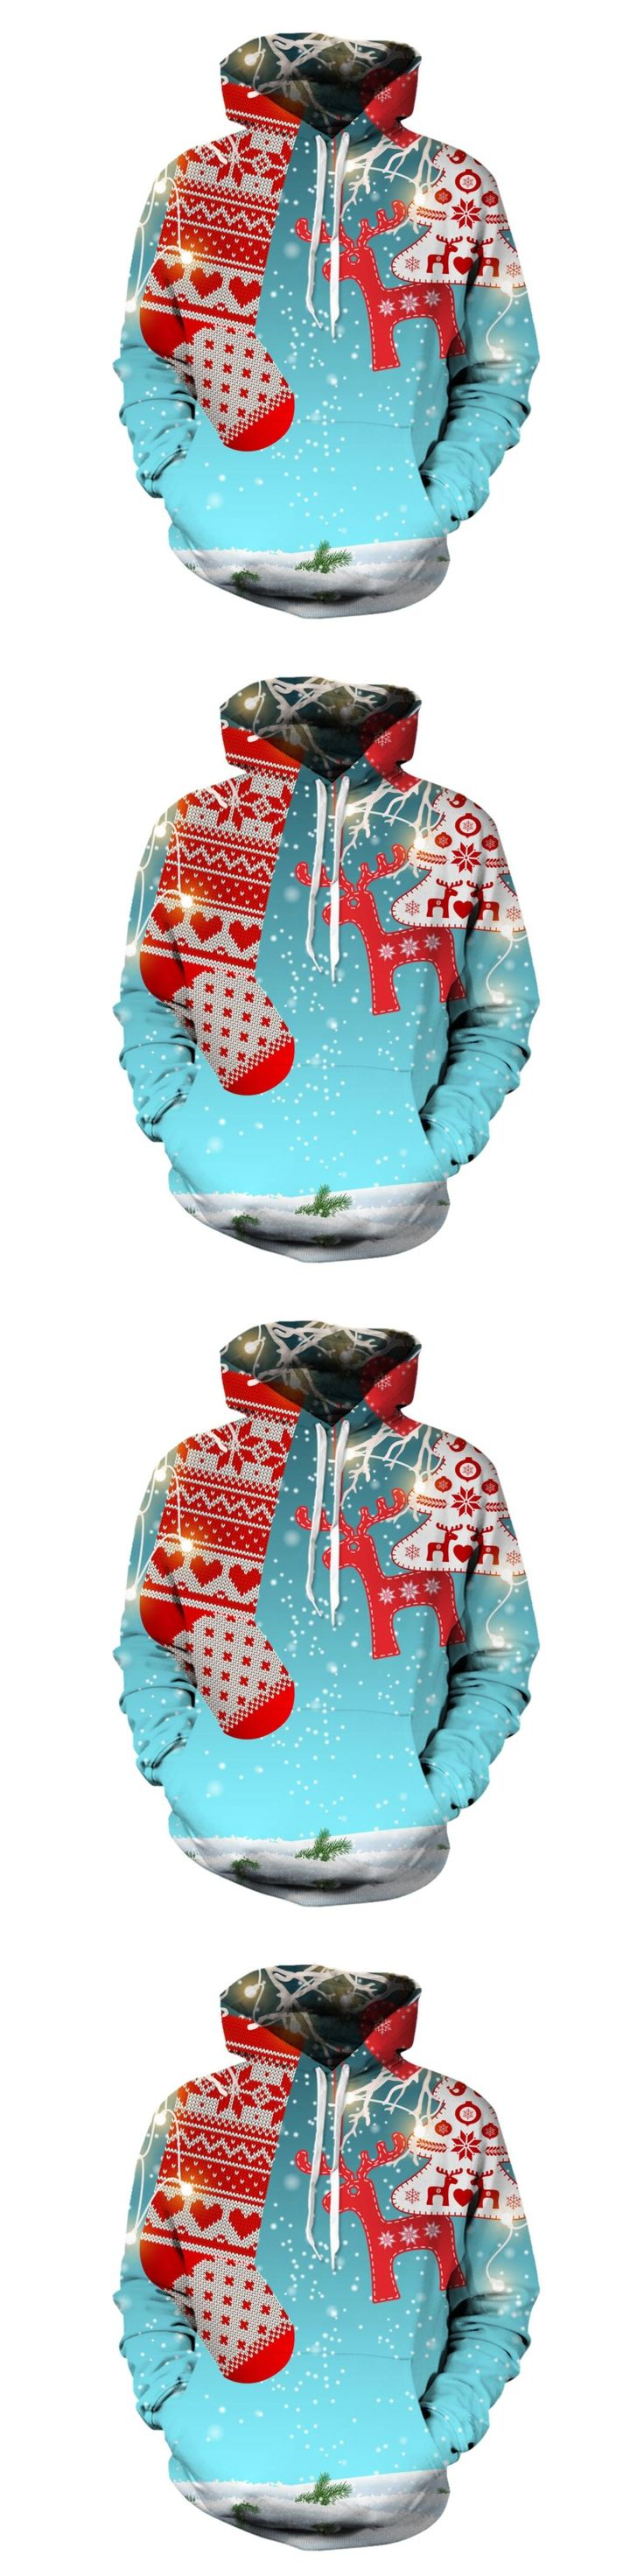 2017 sweatshirt Hoodies Men women Cool creative 3D print Christmas Stockings elk fashion hot Style Streetwear Clothing wholesale